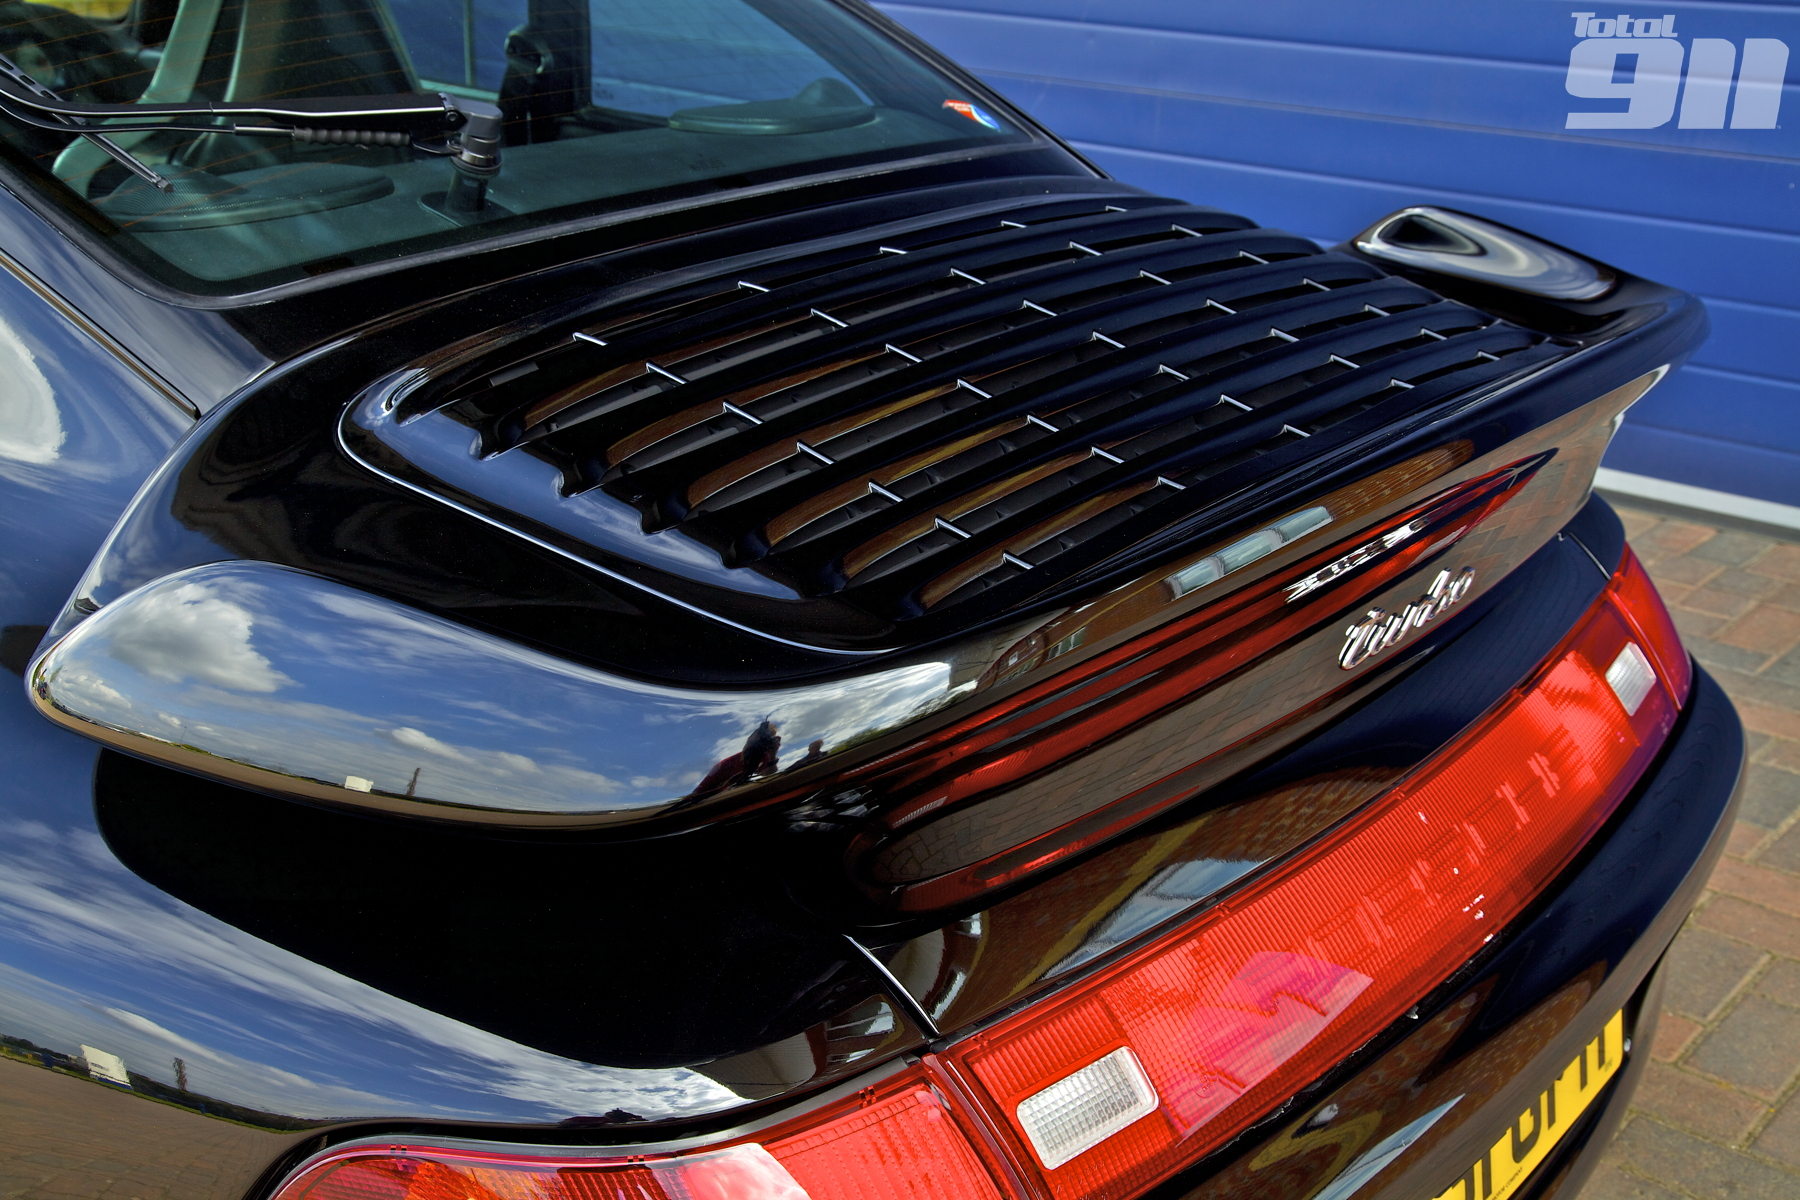 993 Turbo rear wing